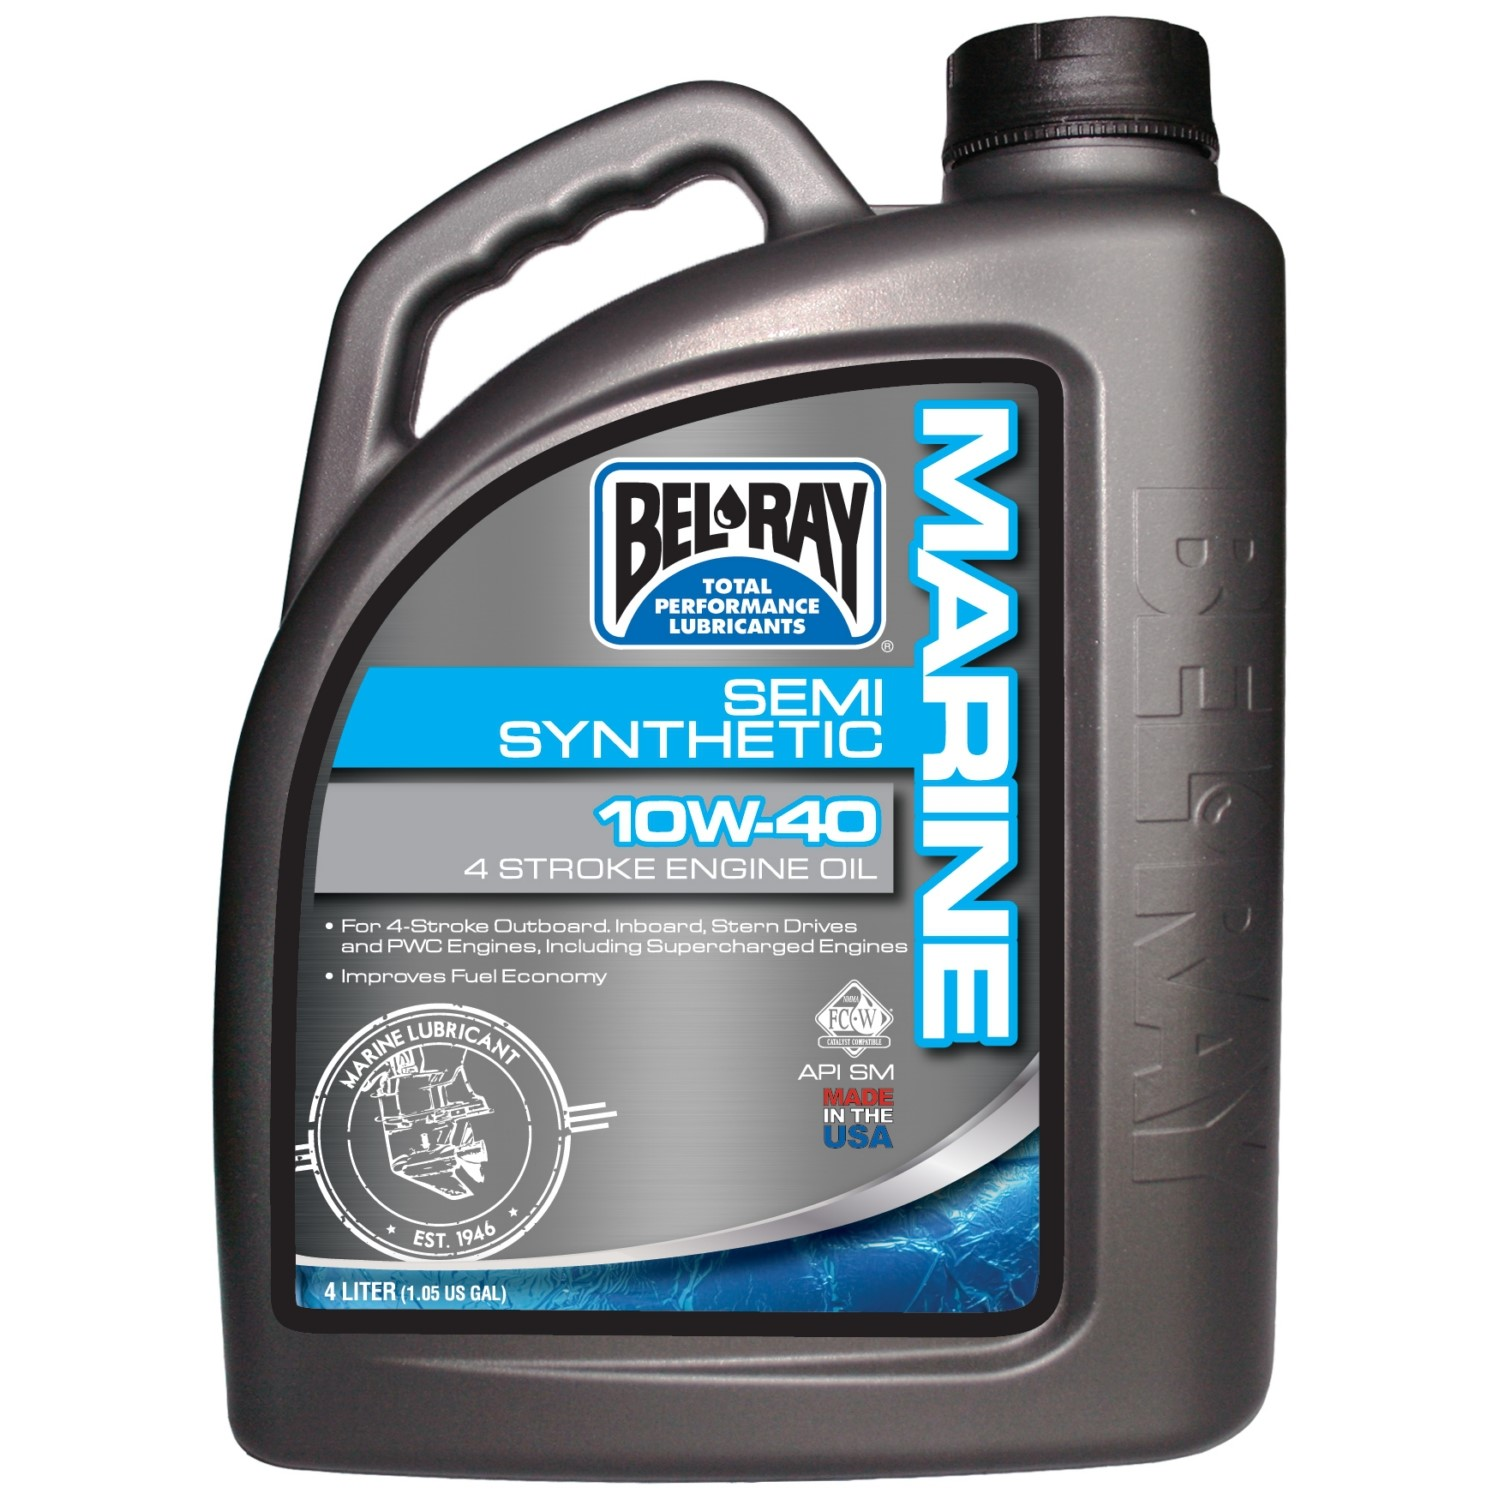 Bel-Ray 4-Stroke Semi-Synthetic Motor Oil 4 L / 1.05 G  4 L / 1.05 G #733310